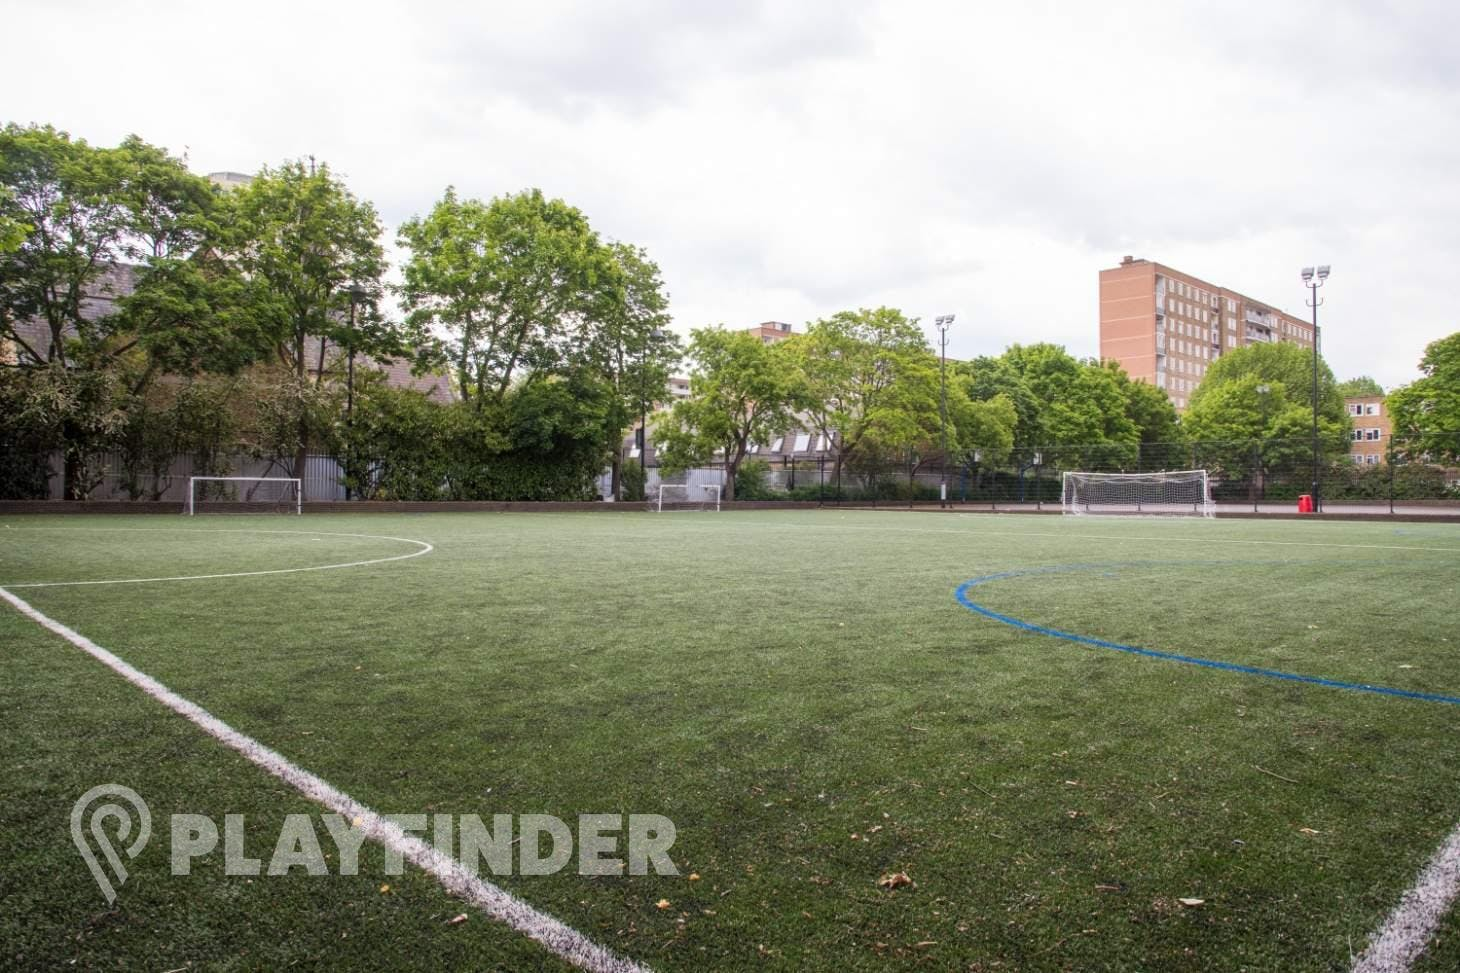 Battersea - 5aside.org 5 a side | 3G Astroturf football pitch